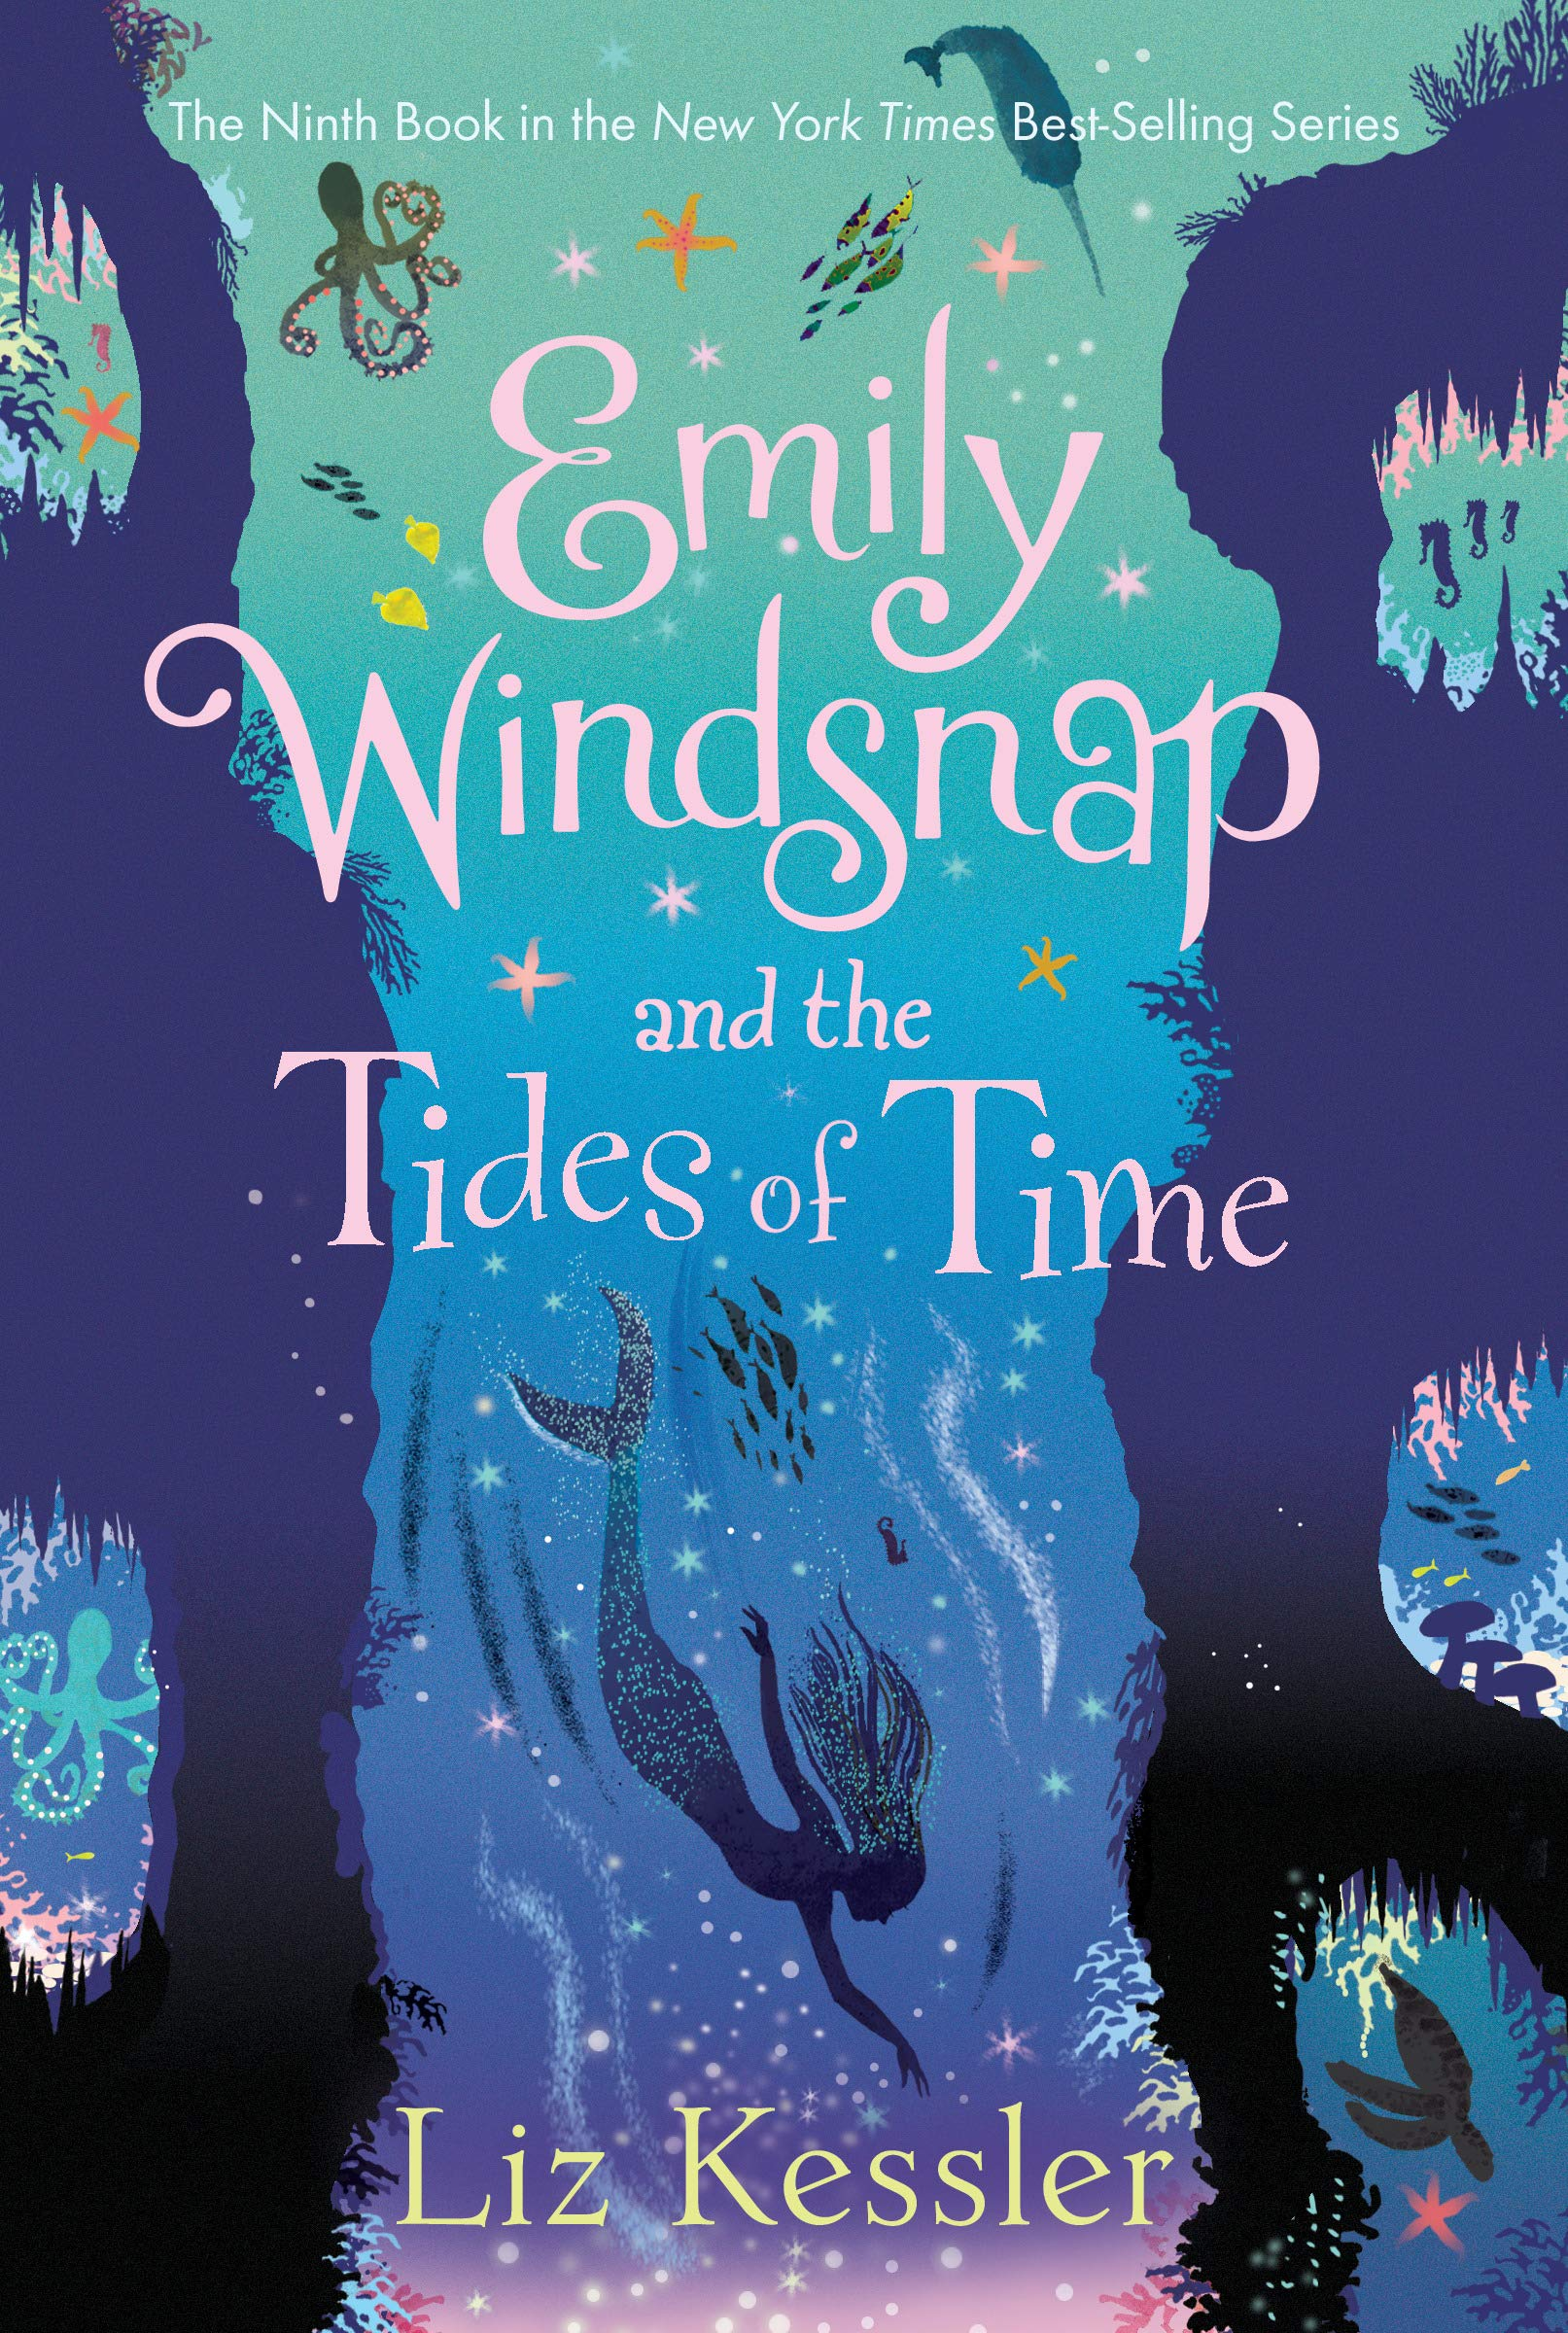 Amazon.com: Emily Windsnap and the Tides of Time (9781536209693): Kessler,  Liz, Farley, Erin: Books